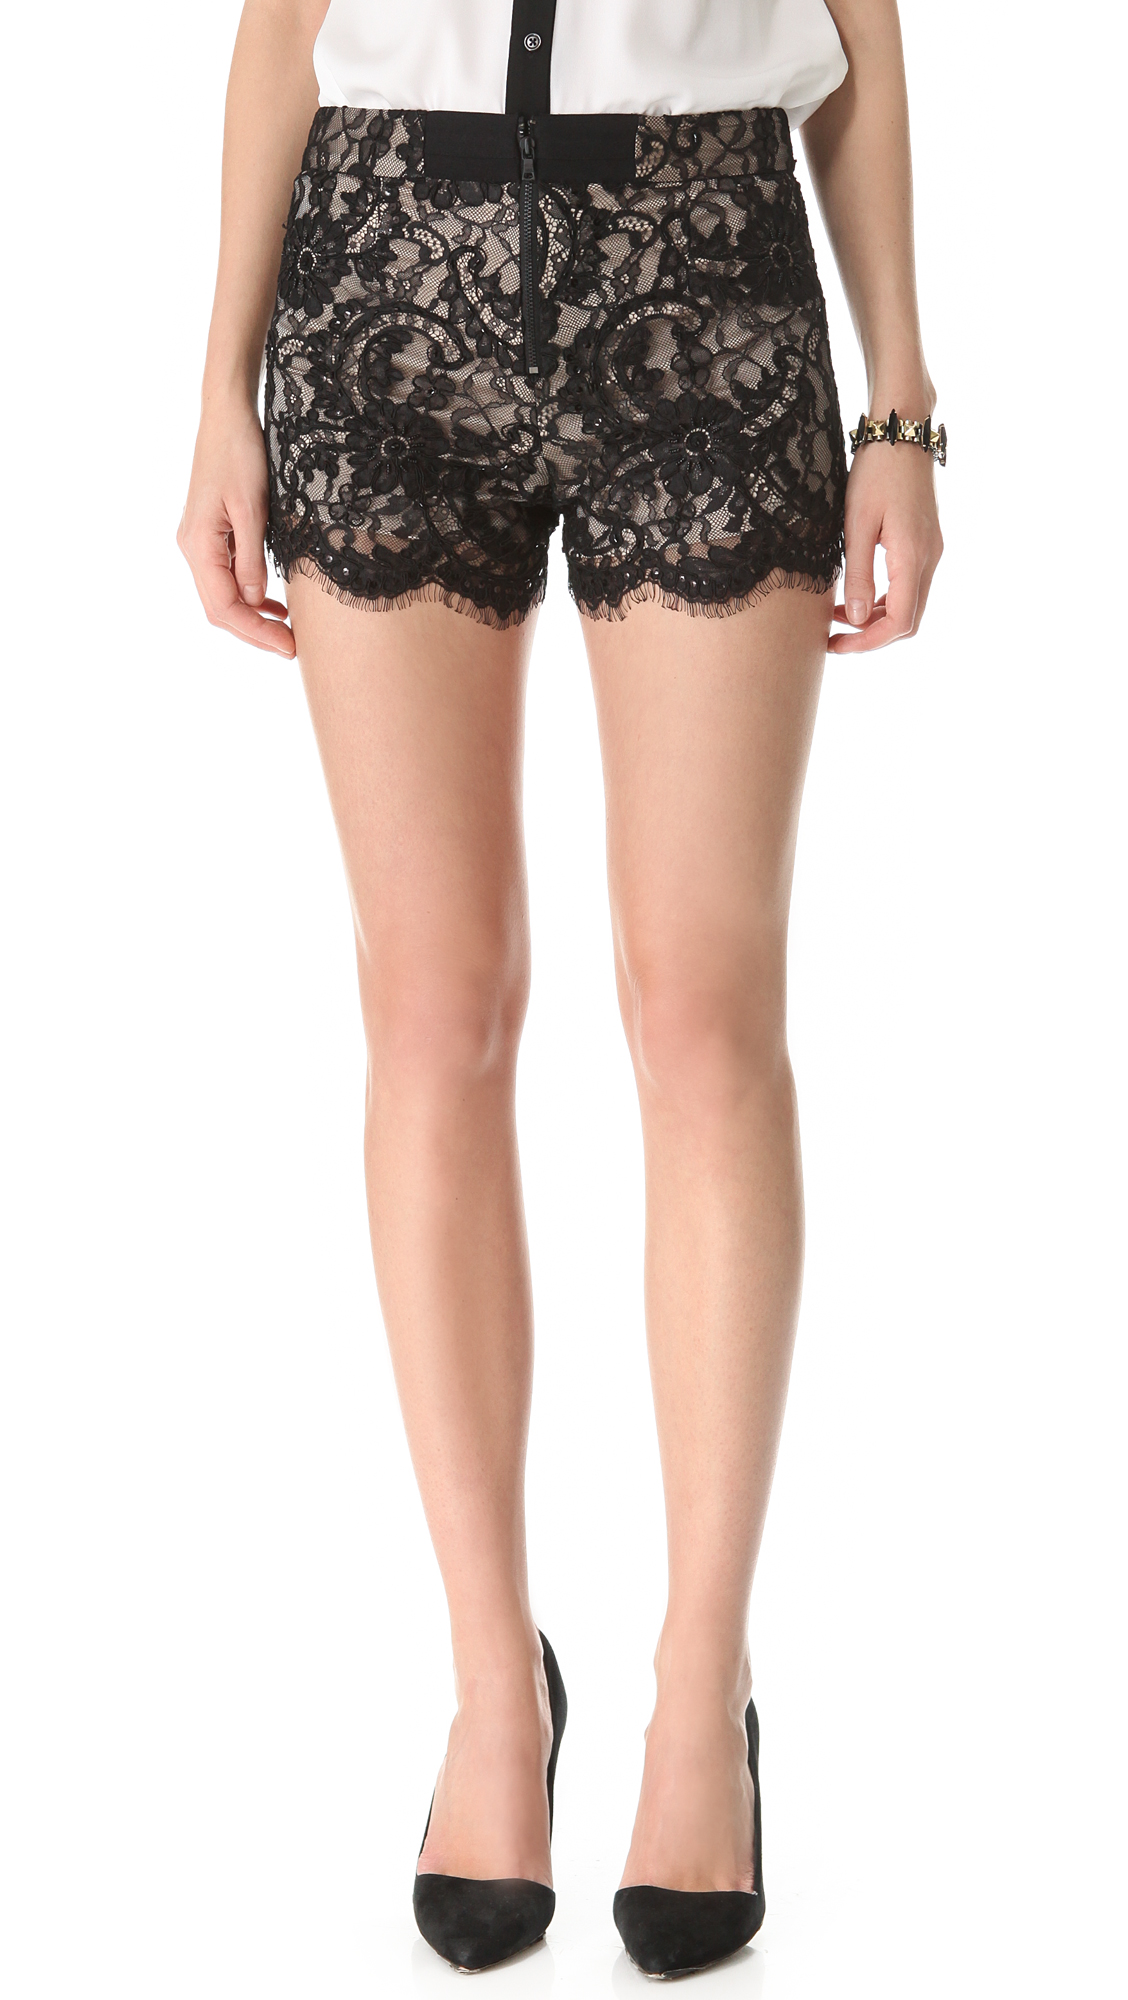 You searched for: black lace shorts! Etsy is the home to thousands of handmade, vintage, and one-of-a-kind products and gifts related to your search. No matter what you're looking for or where you are in the world, our global marketplace of sellers can help you find unique and affordable options. Let's get started!